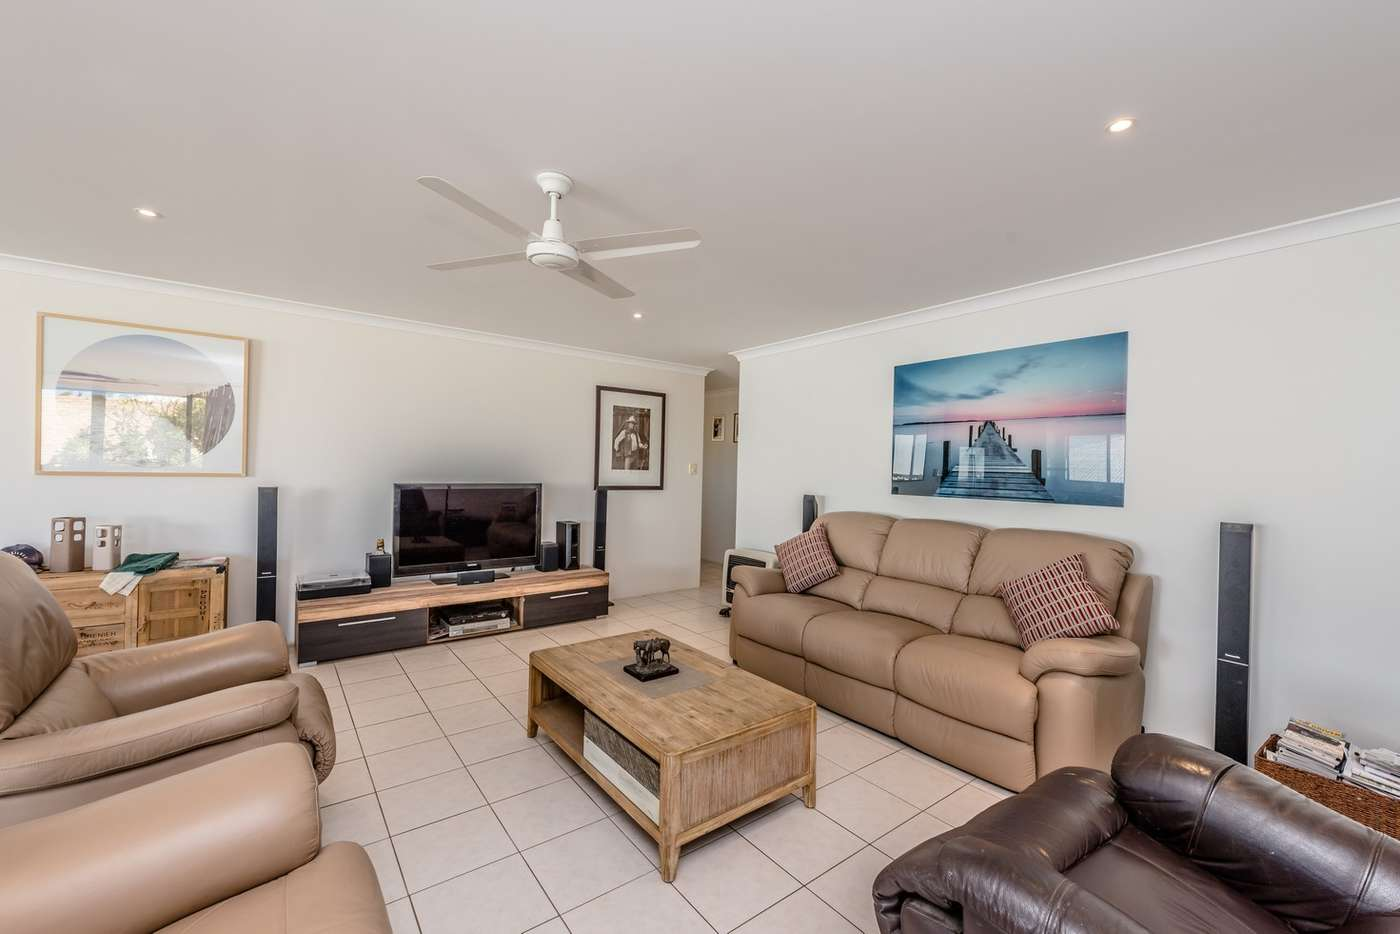 Seventh view of Homely house listing, 14 Penzance Way, Tarcoola Beach WA 6530